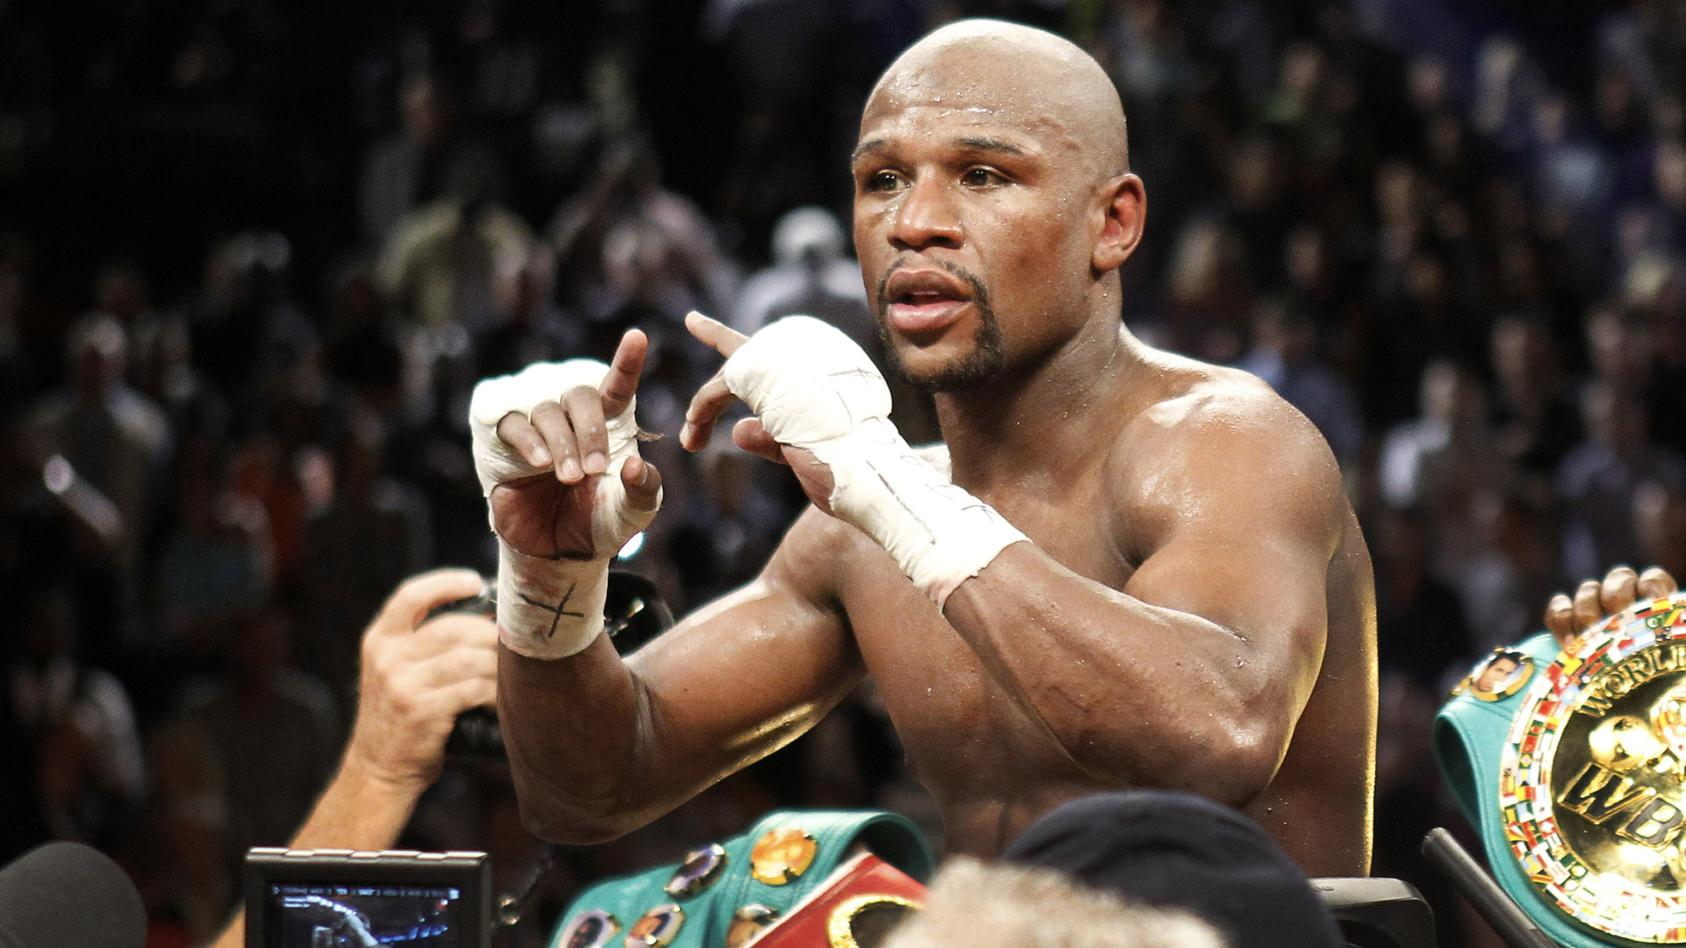 Undefeated WBC welterweight champion Floyd Mayweather Jr. of the U.S. celebrates his victory over Robert Guerrero, also of the U.S., at the MGM Grand Garden Arena in Las Vegas